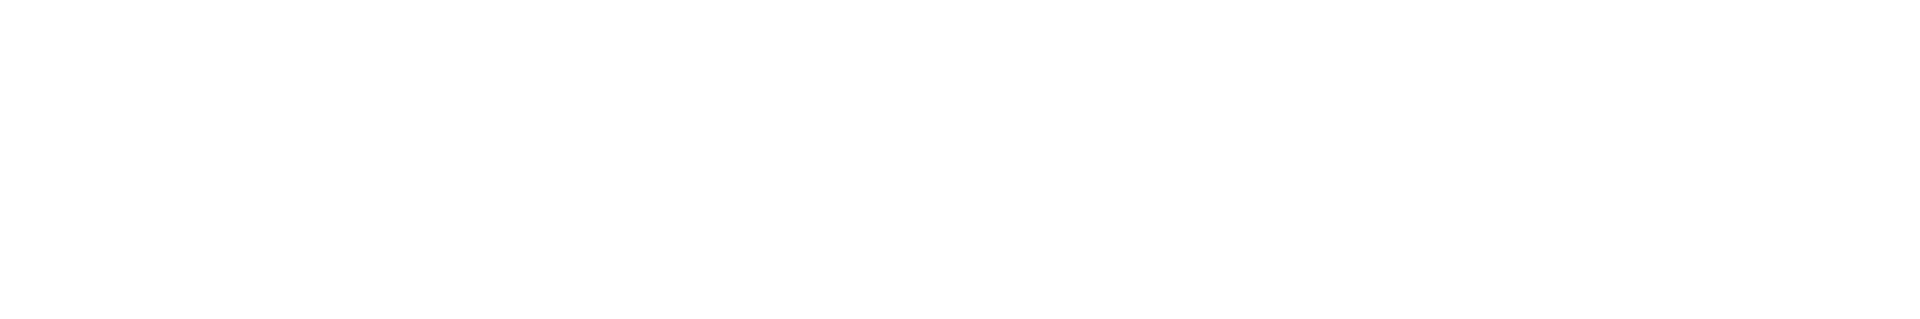 be humane_now.png